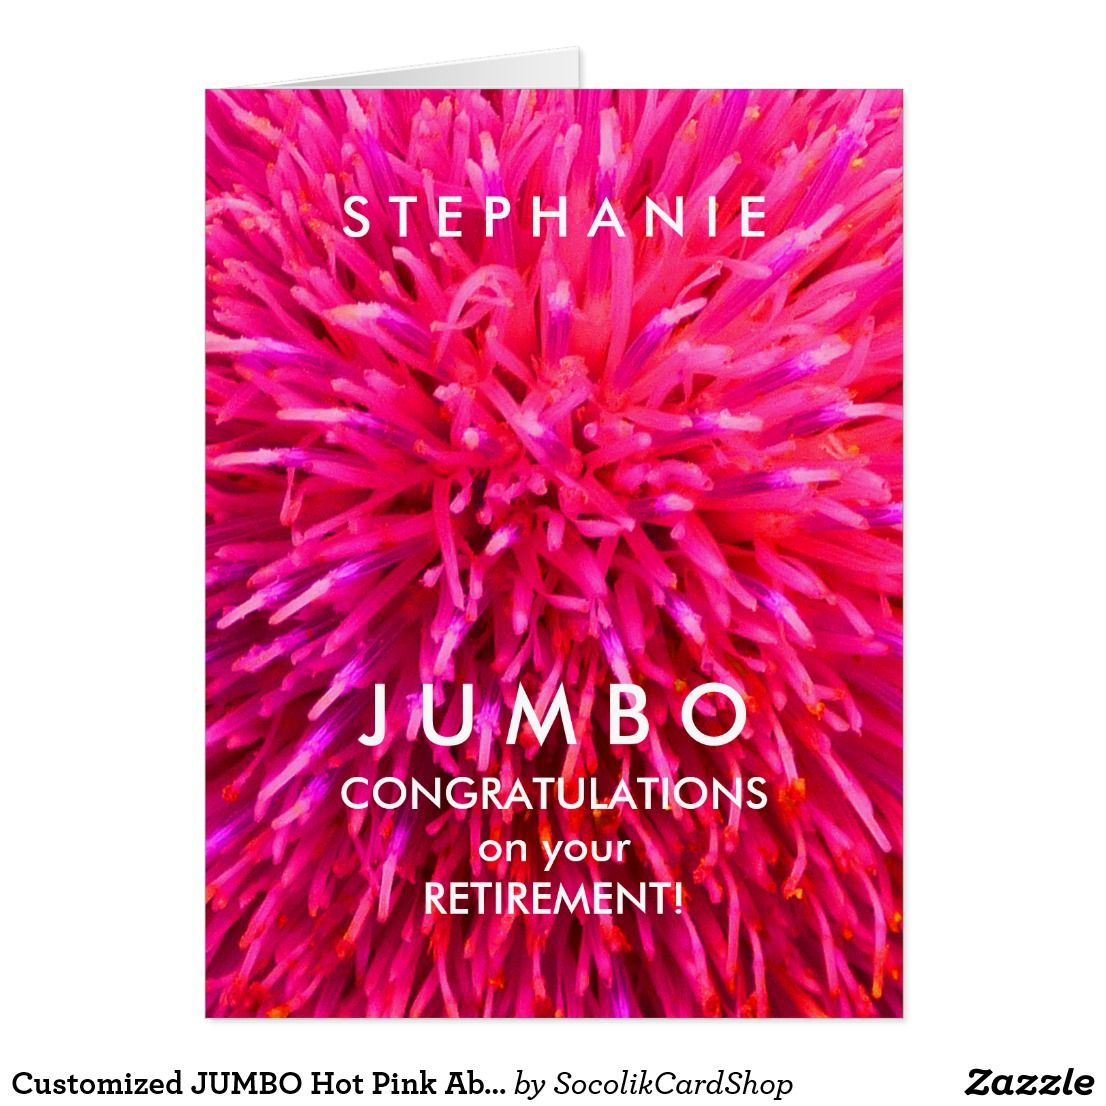 Customized Jumbo Hot Pink Abstract Retirement Card Pinterest